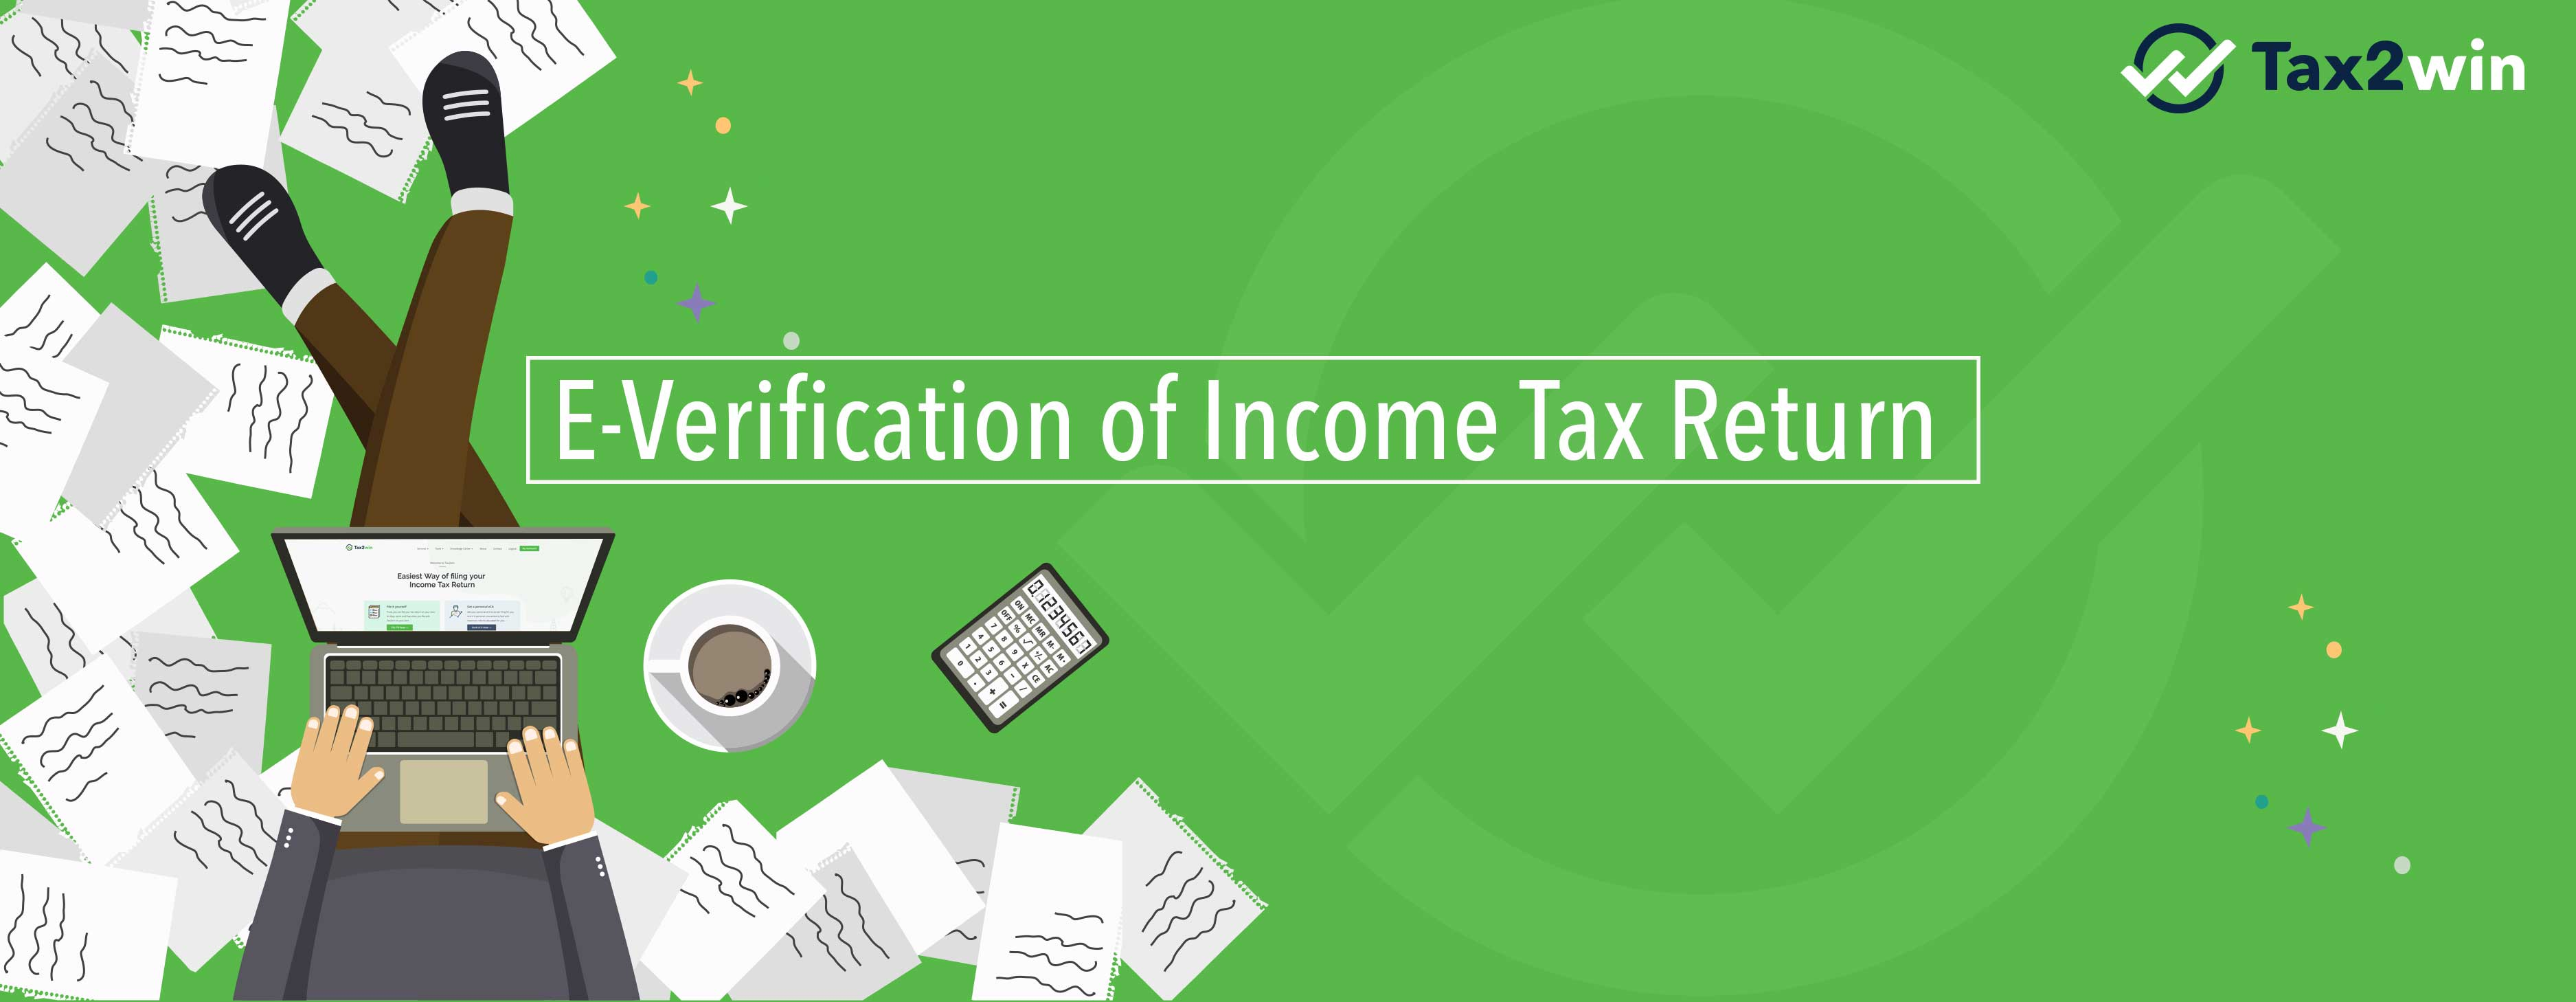 Step-By-Step guide to e-verify your Income Tax Return| E-verification after filing your ITR